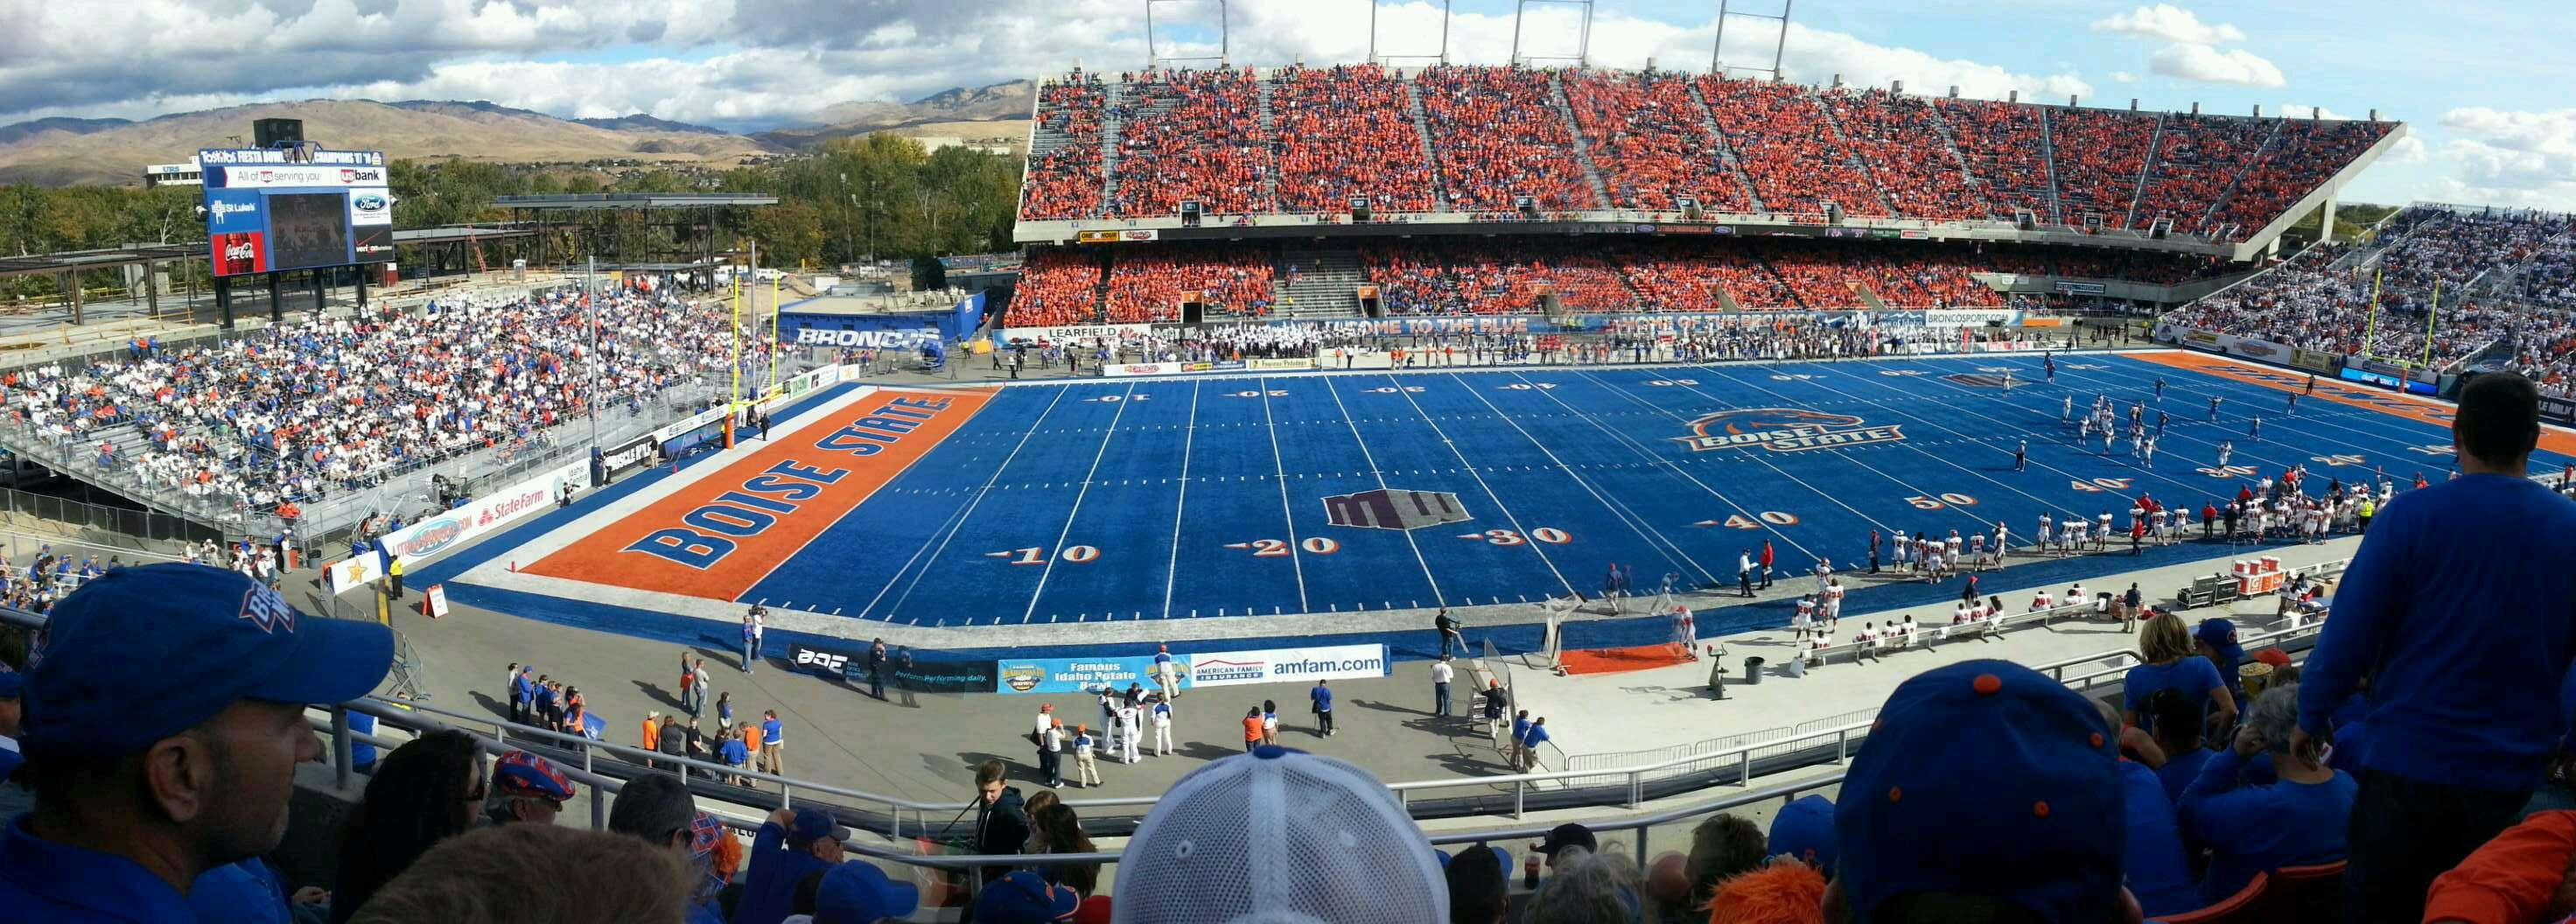 Bronco StadiumBoise State Seating Guide  RateYourSeats